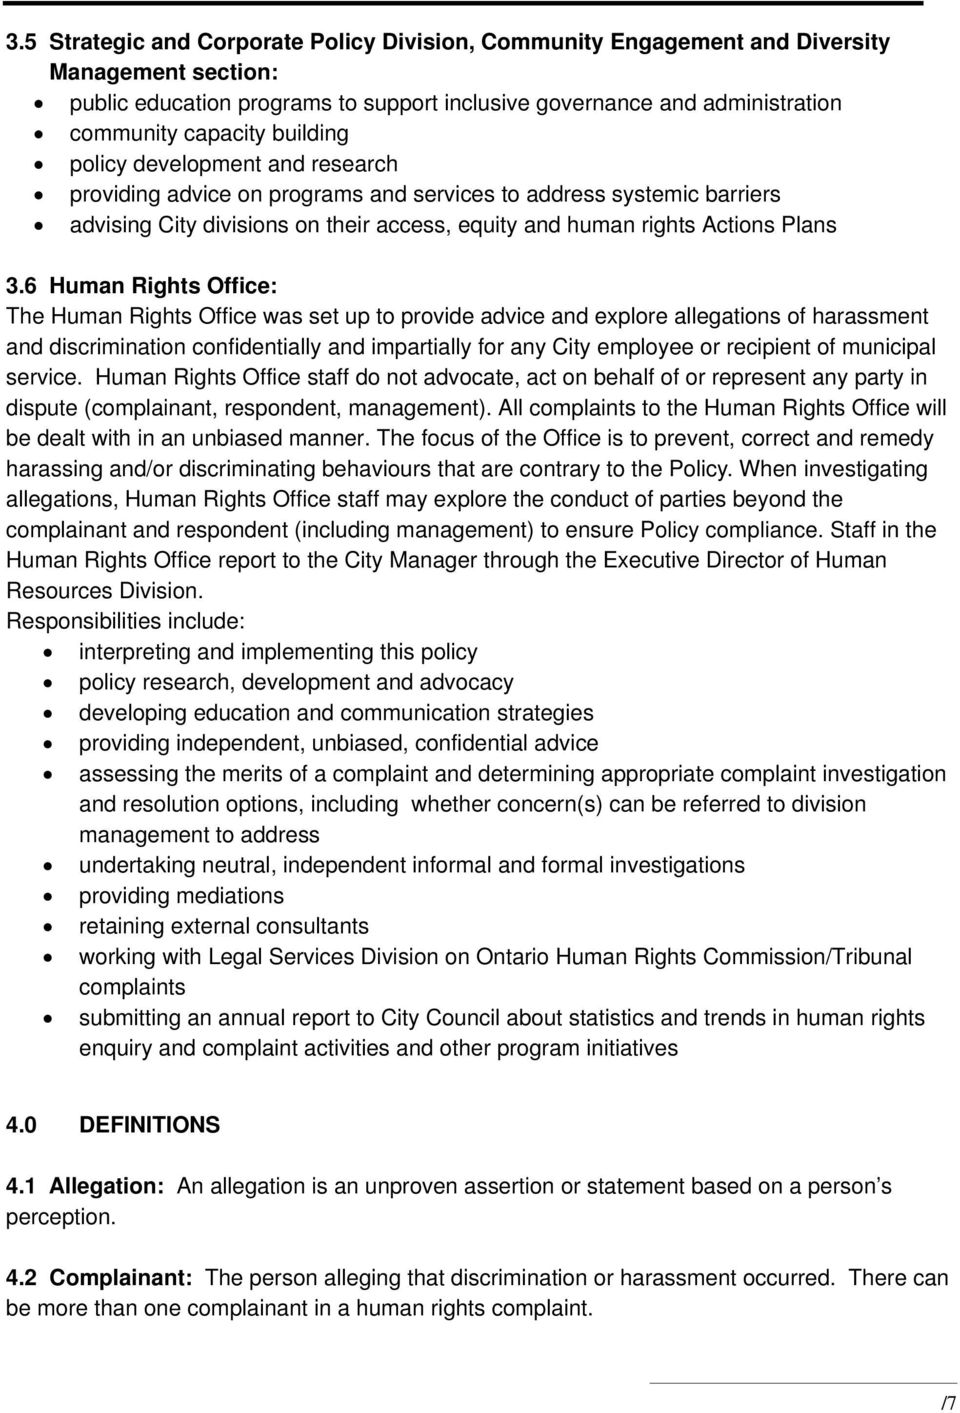 6 Human Rights Office: The Human Rights Office was set up to provide advice and explore allegations of harassment and discrimination confidentially and impartially for any City employee or recipient